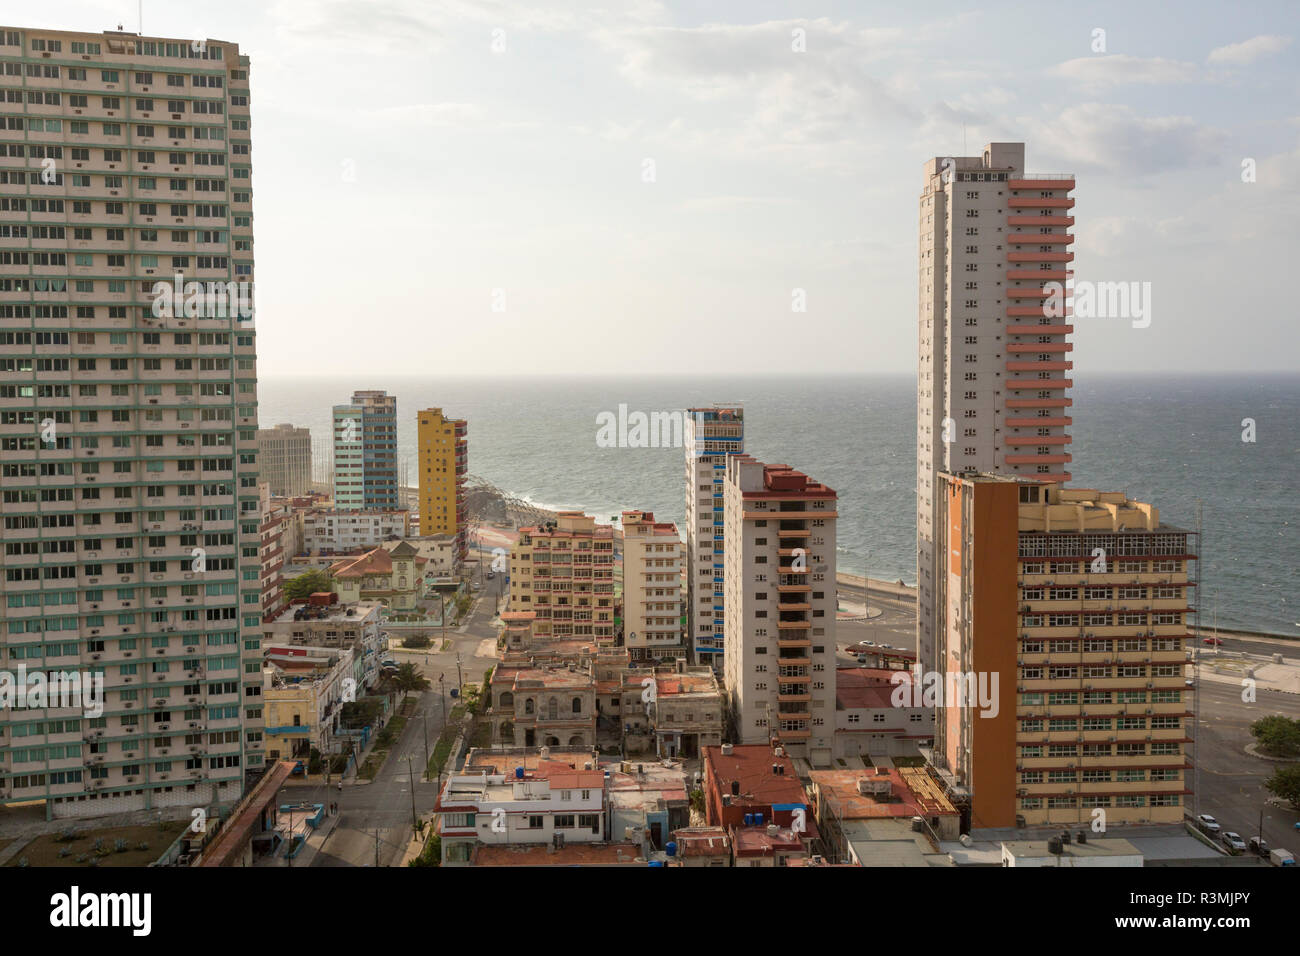 Cuba, Havana. View of the city and Havana Harbor. Credit as: Wendy Kaveney / Jaynes Gallery / DanitaDelimont.com Stock Photo